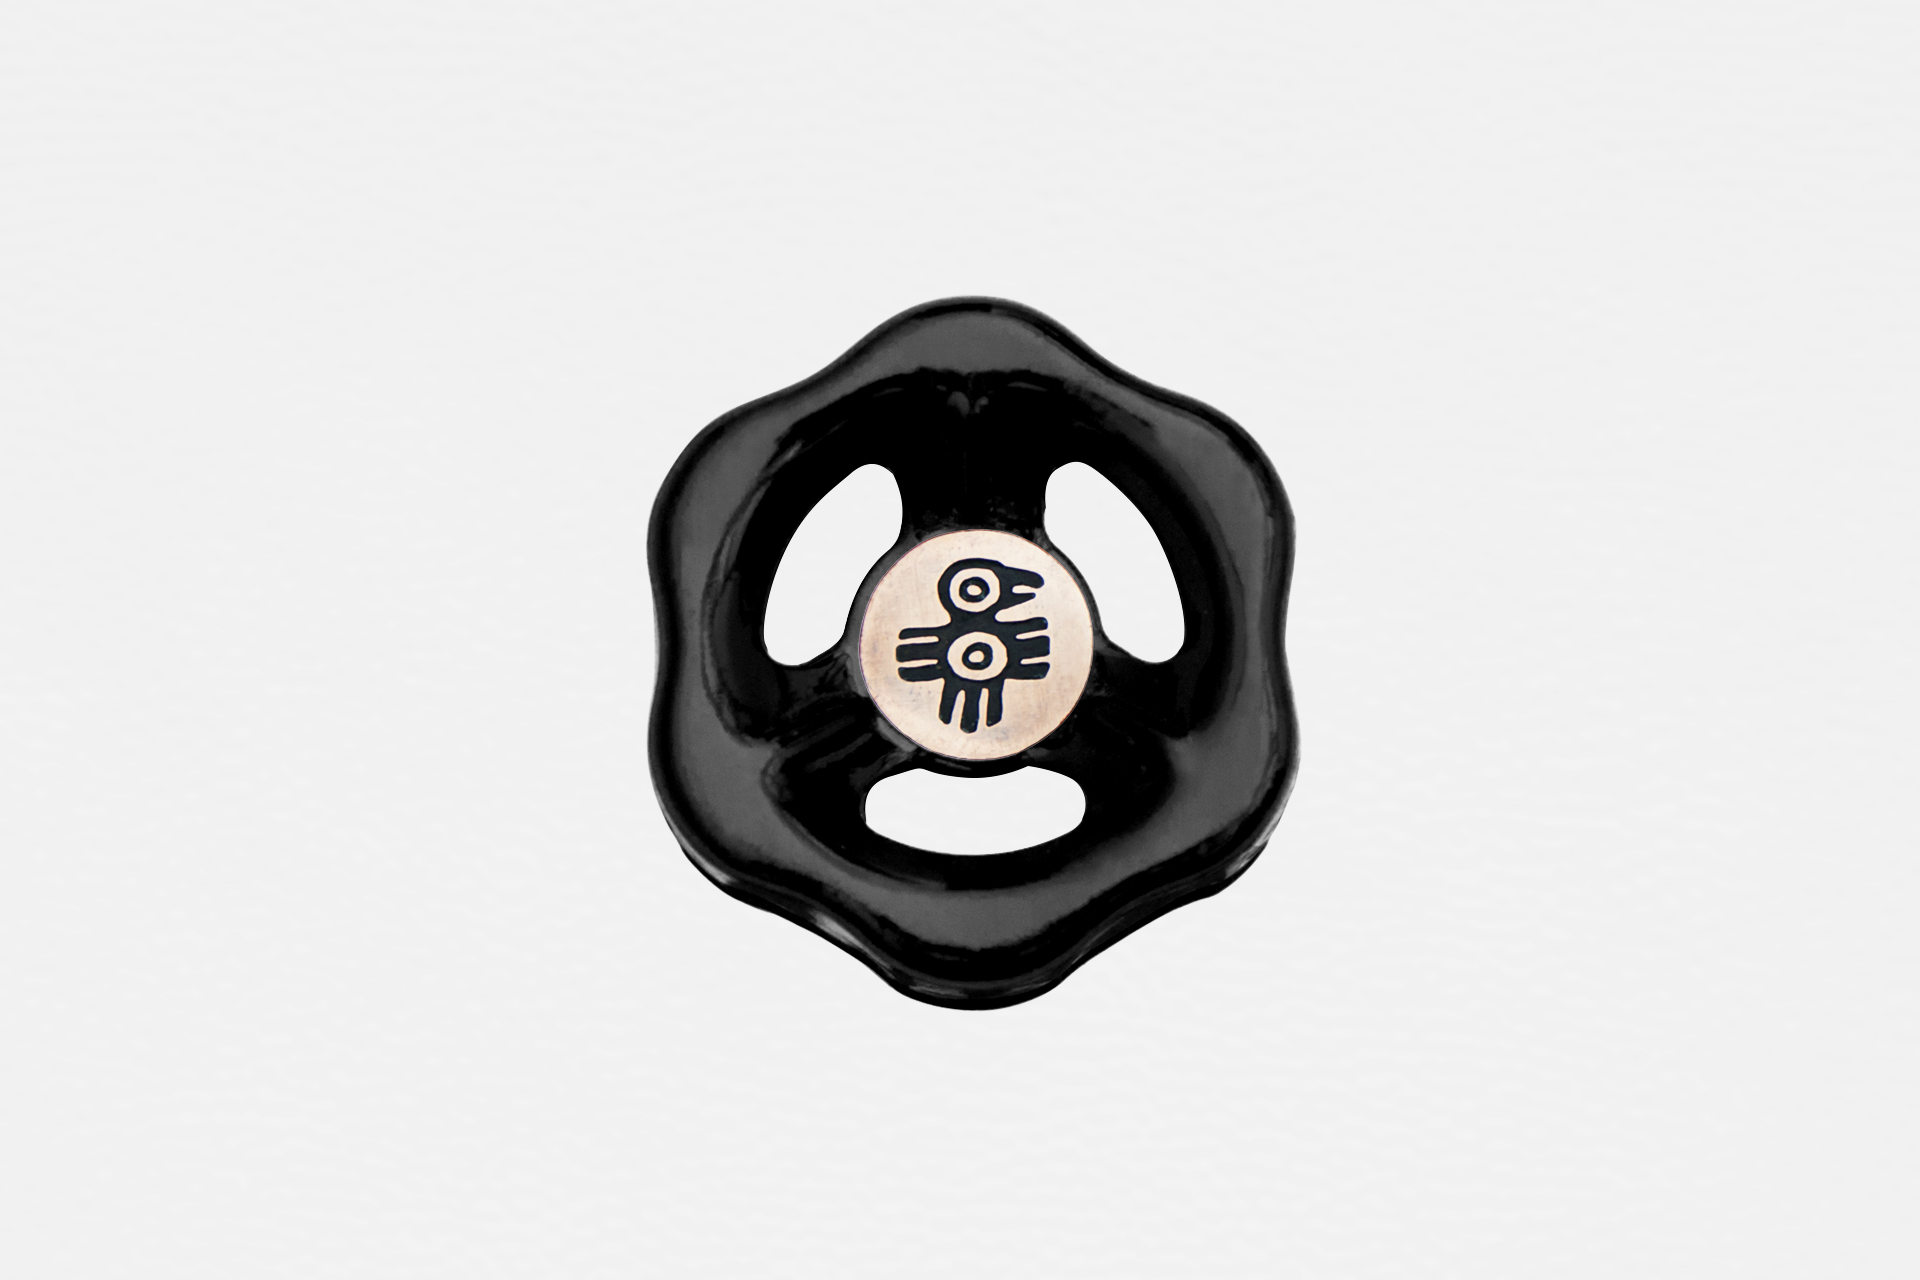 Dimmer light switch knob in black color for loft interiors